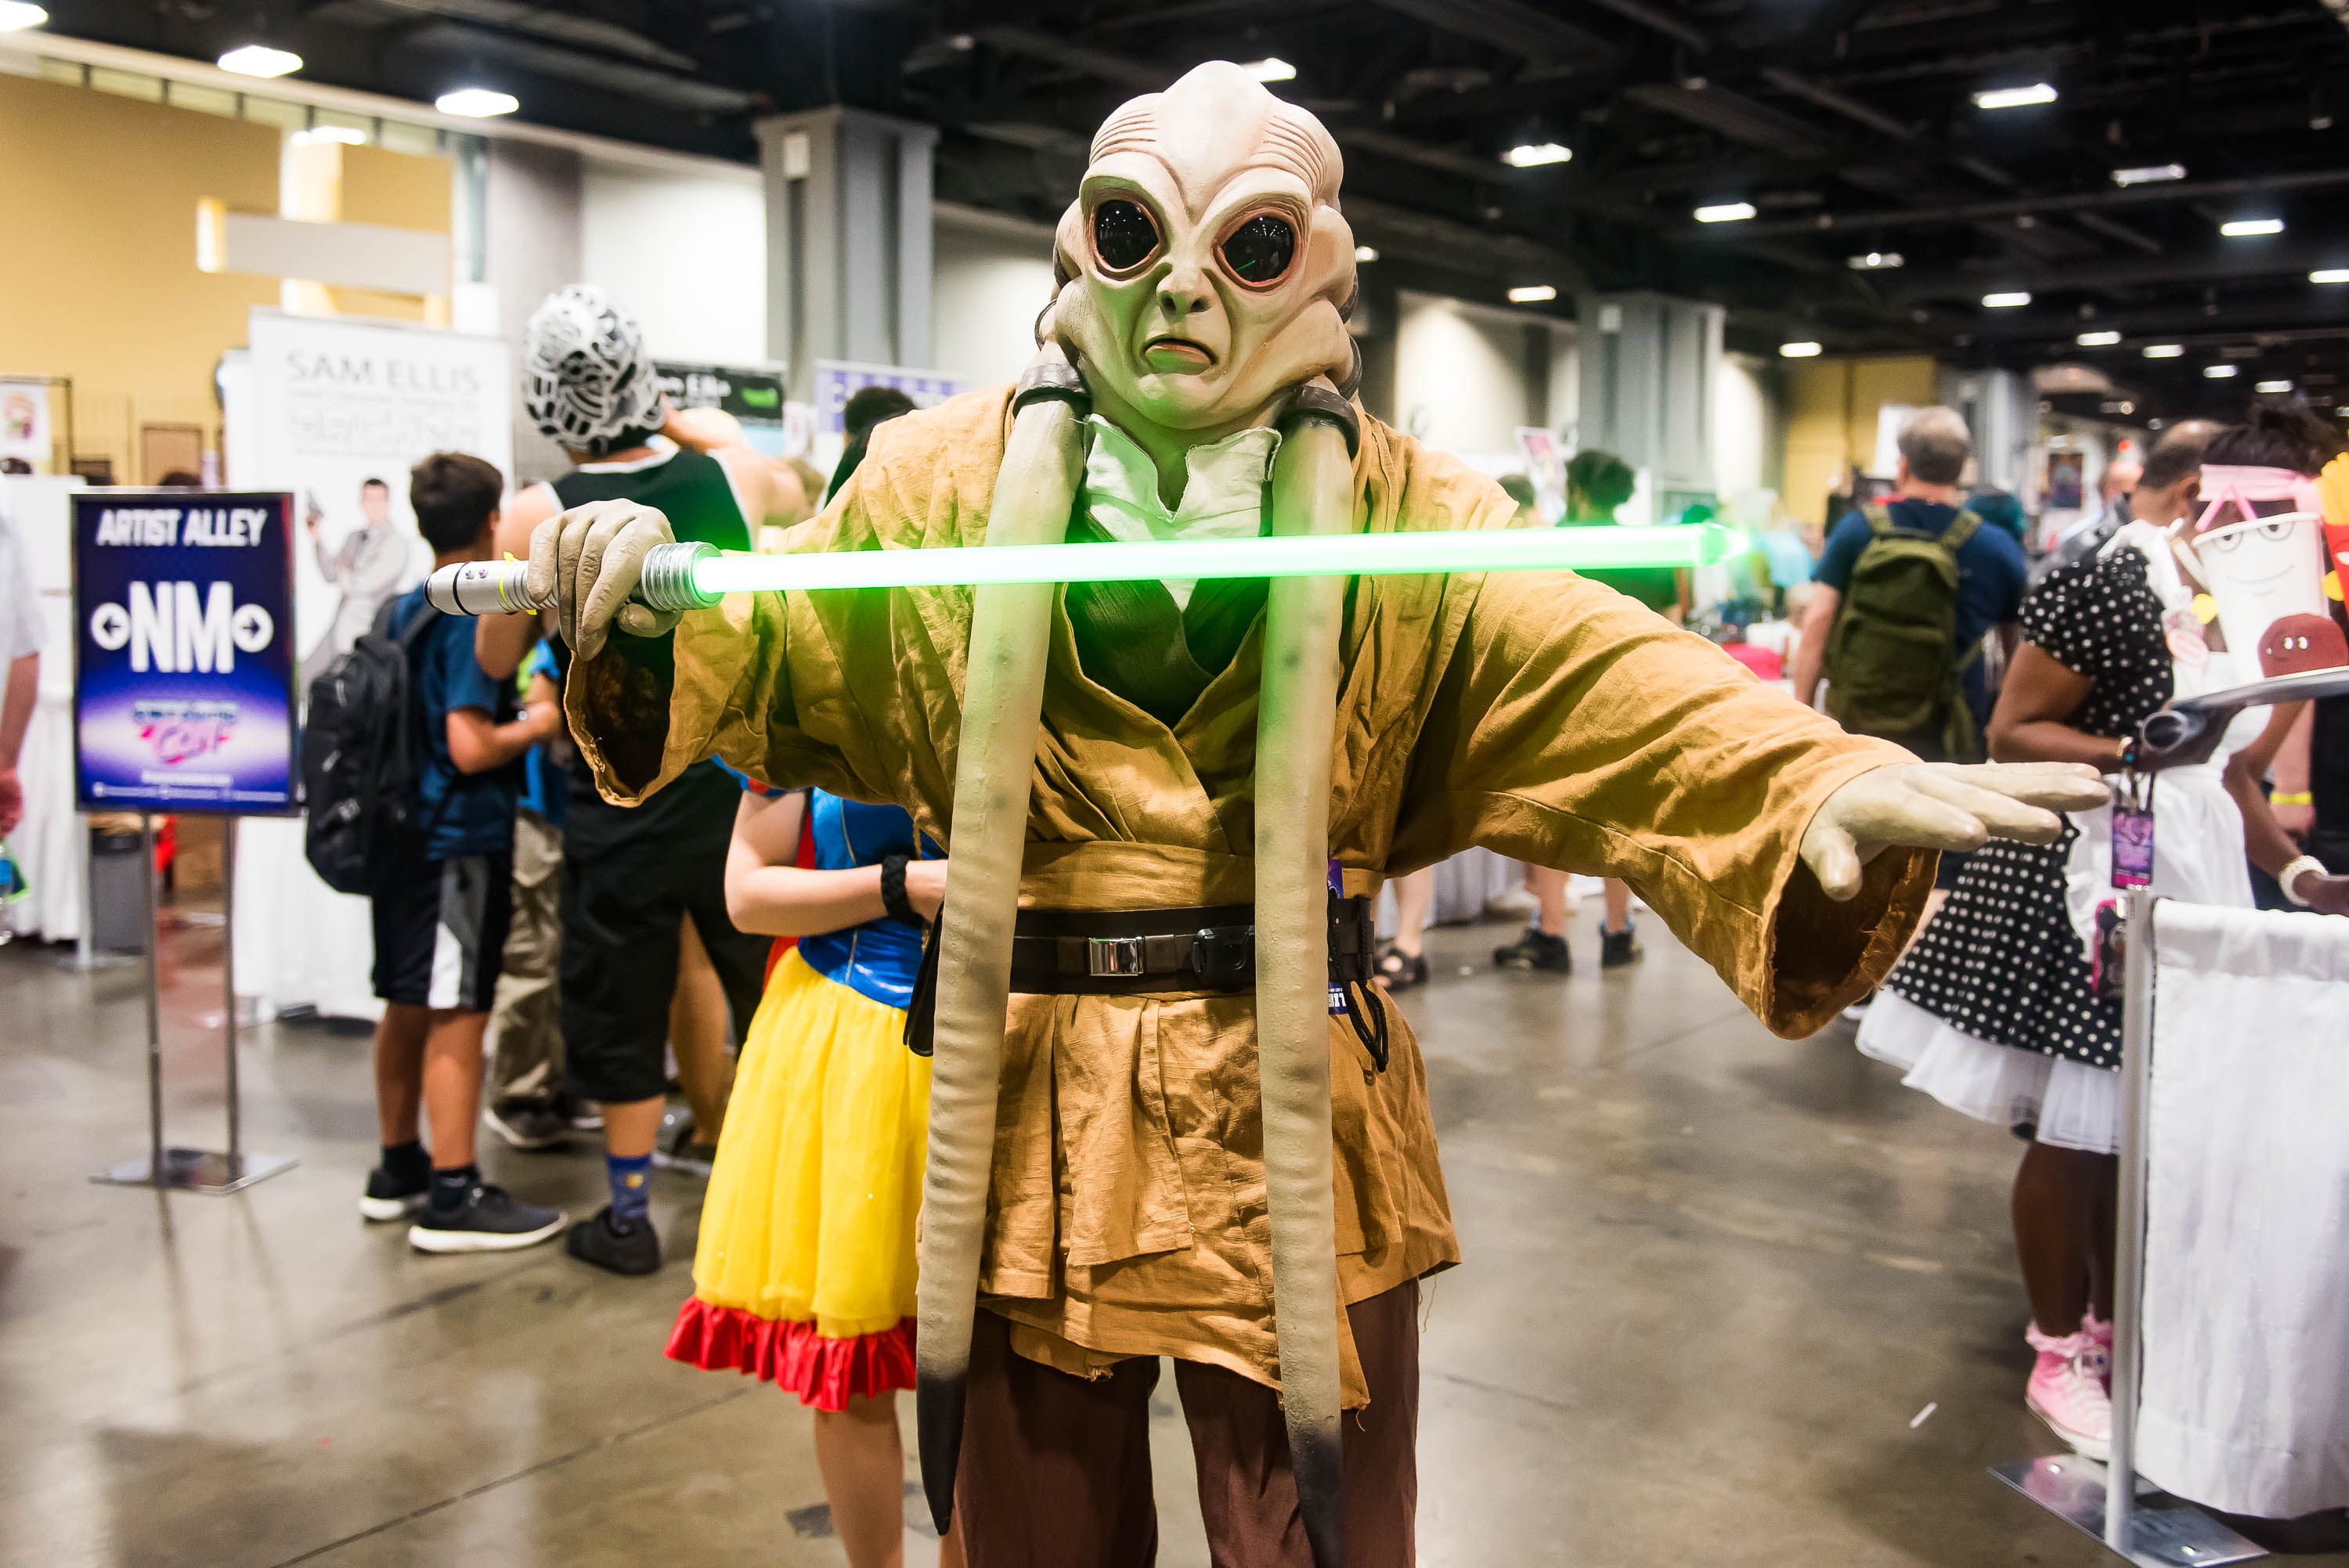 Nerds and geeks alike joined forces at Awesome Con, a three-day event celebrating all forms of pop culture, and just about all of them came in costume. Here are our favorite cosplays of 2017, from the funny to the extraordinary. (Image: Joy Asico/www.asicophoto.com)